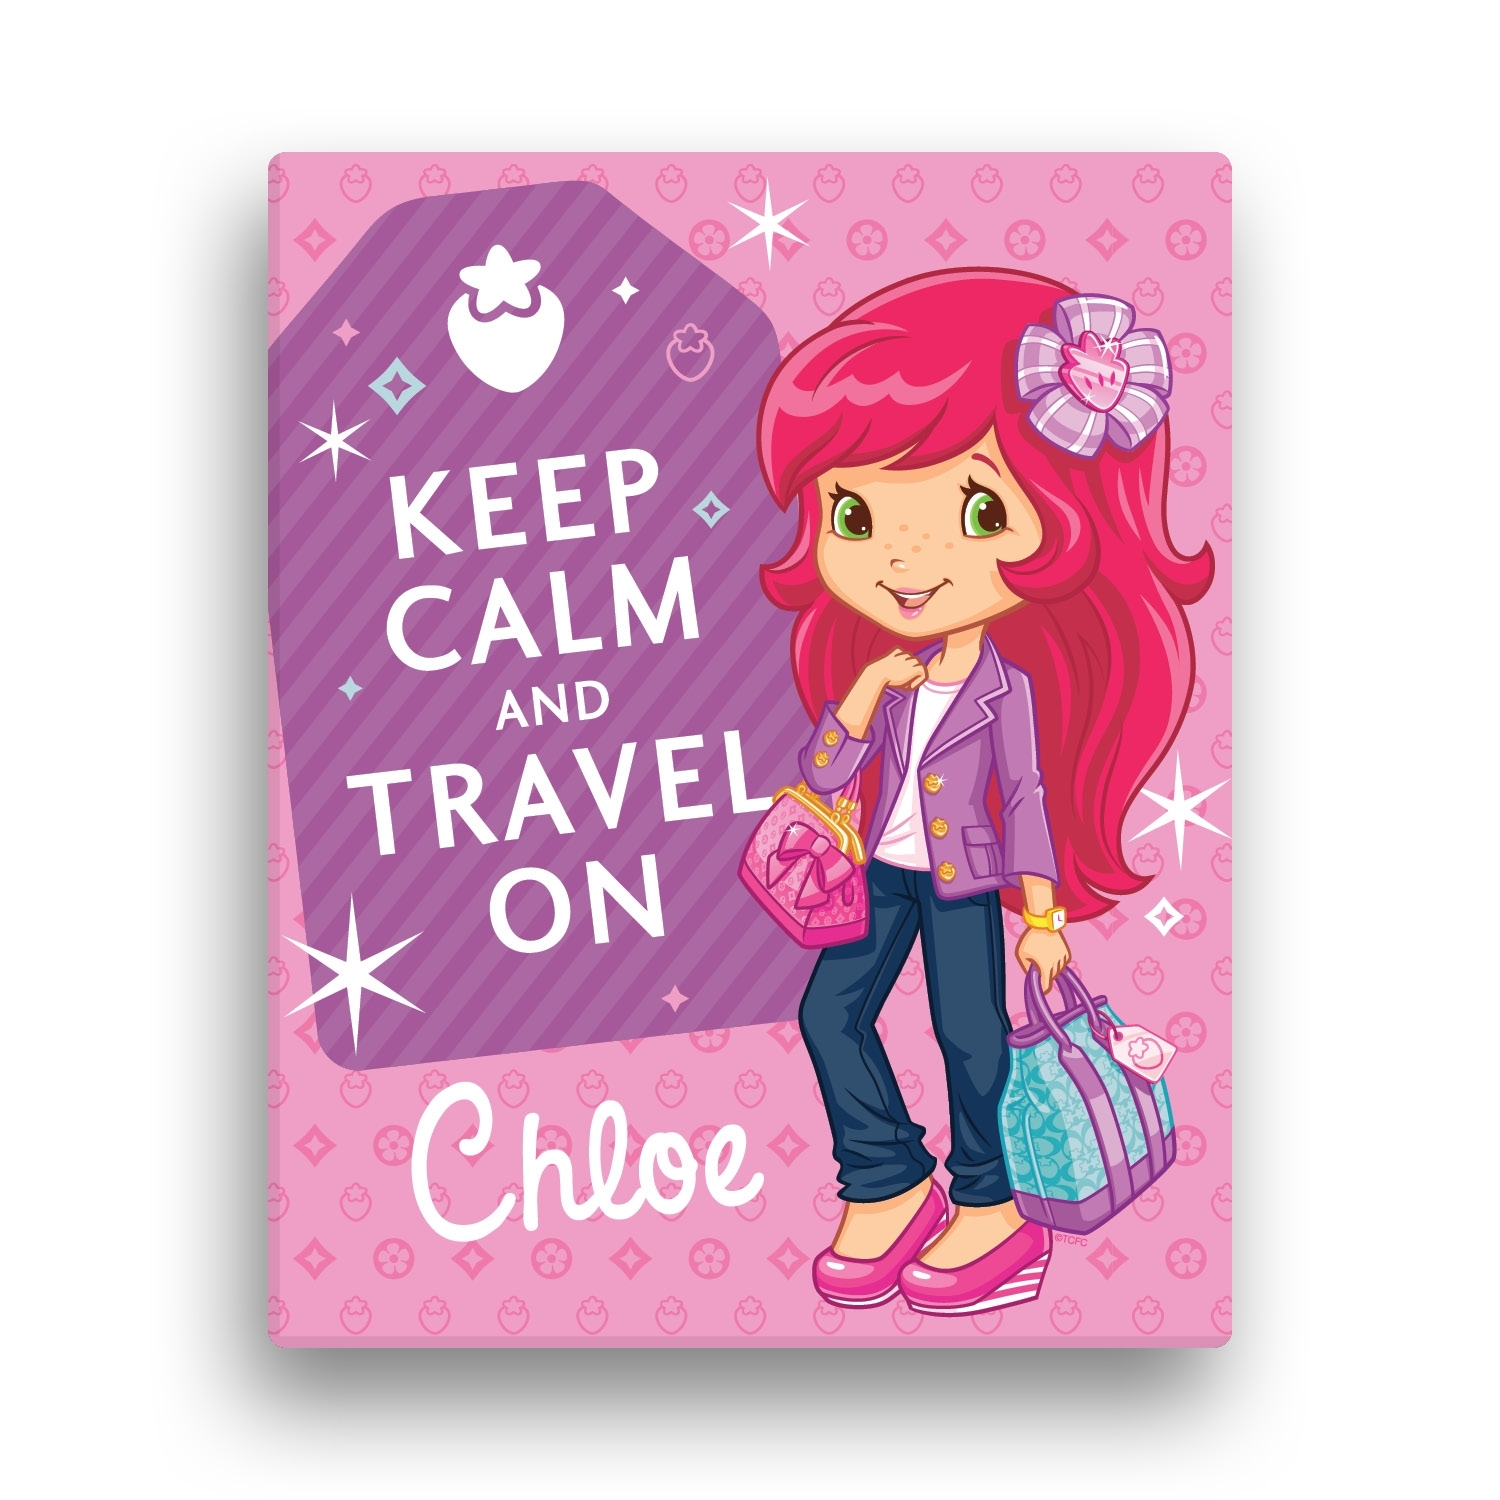 Strawberry Shortcake Keep Calm 16 X 20 Canvas Wall Art | Tv's Toy Box Within Newest Keep Calm Canvas Wall Art (View 15 of 15)